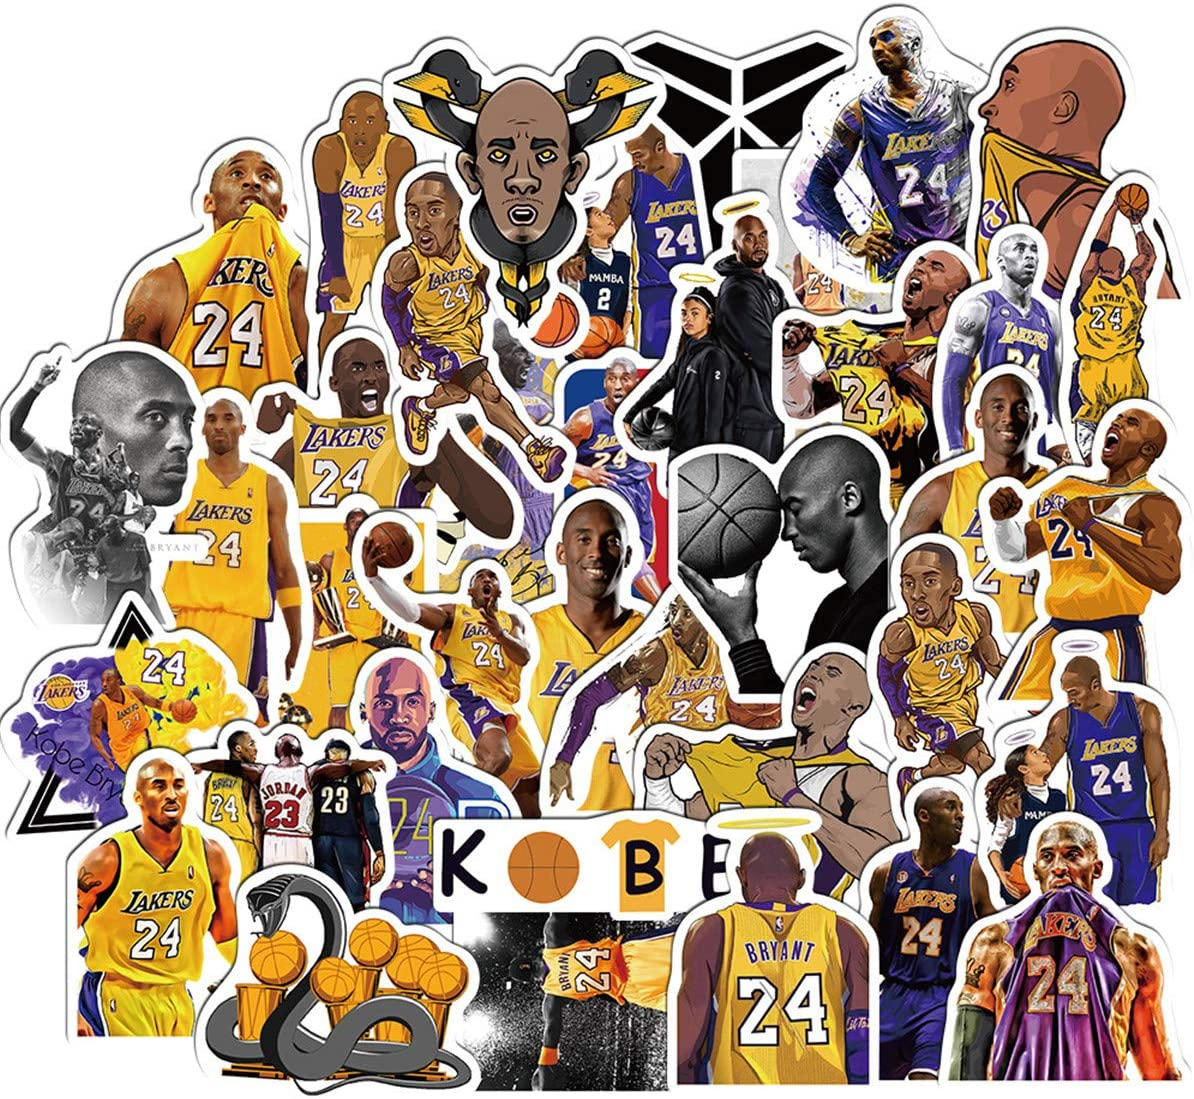 Basketball Star Stickers for Laptop and Computer【50PCS】 Kobe Black Mamba Waterproof Vinyl Stickers for Water Bottle Hydro Flask Car Bumper Luggage,Cute Graffiti Decals for Adults (Basketball Star)